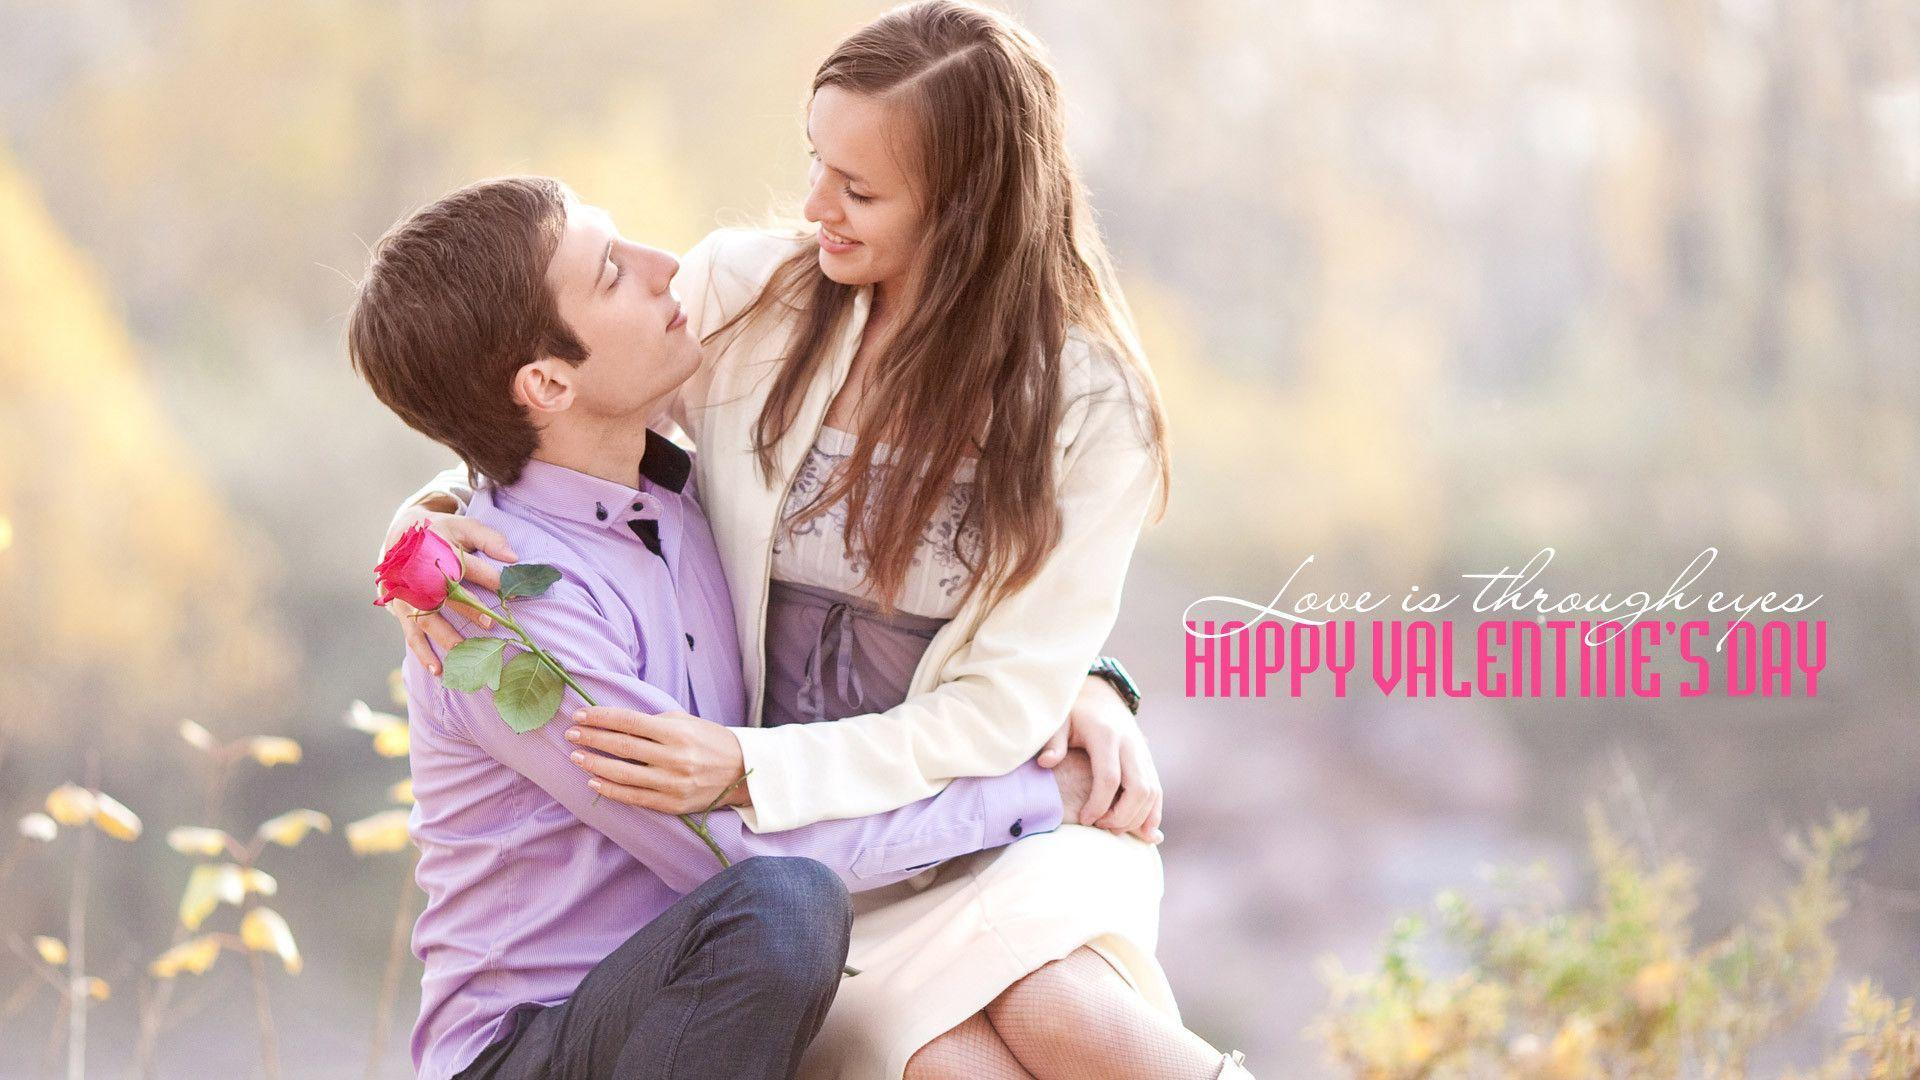 Very Nice Love couple Wallpaper : cute couple Backgrounds - Wallpaper cave